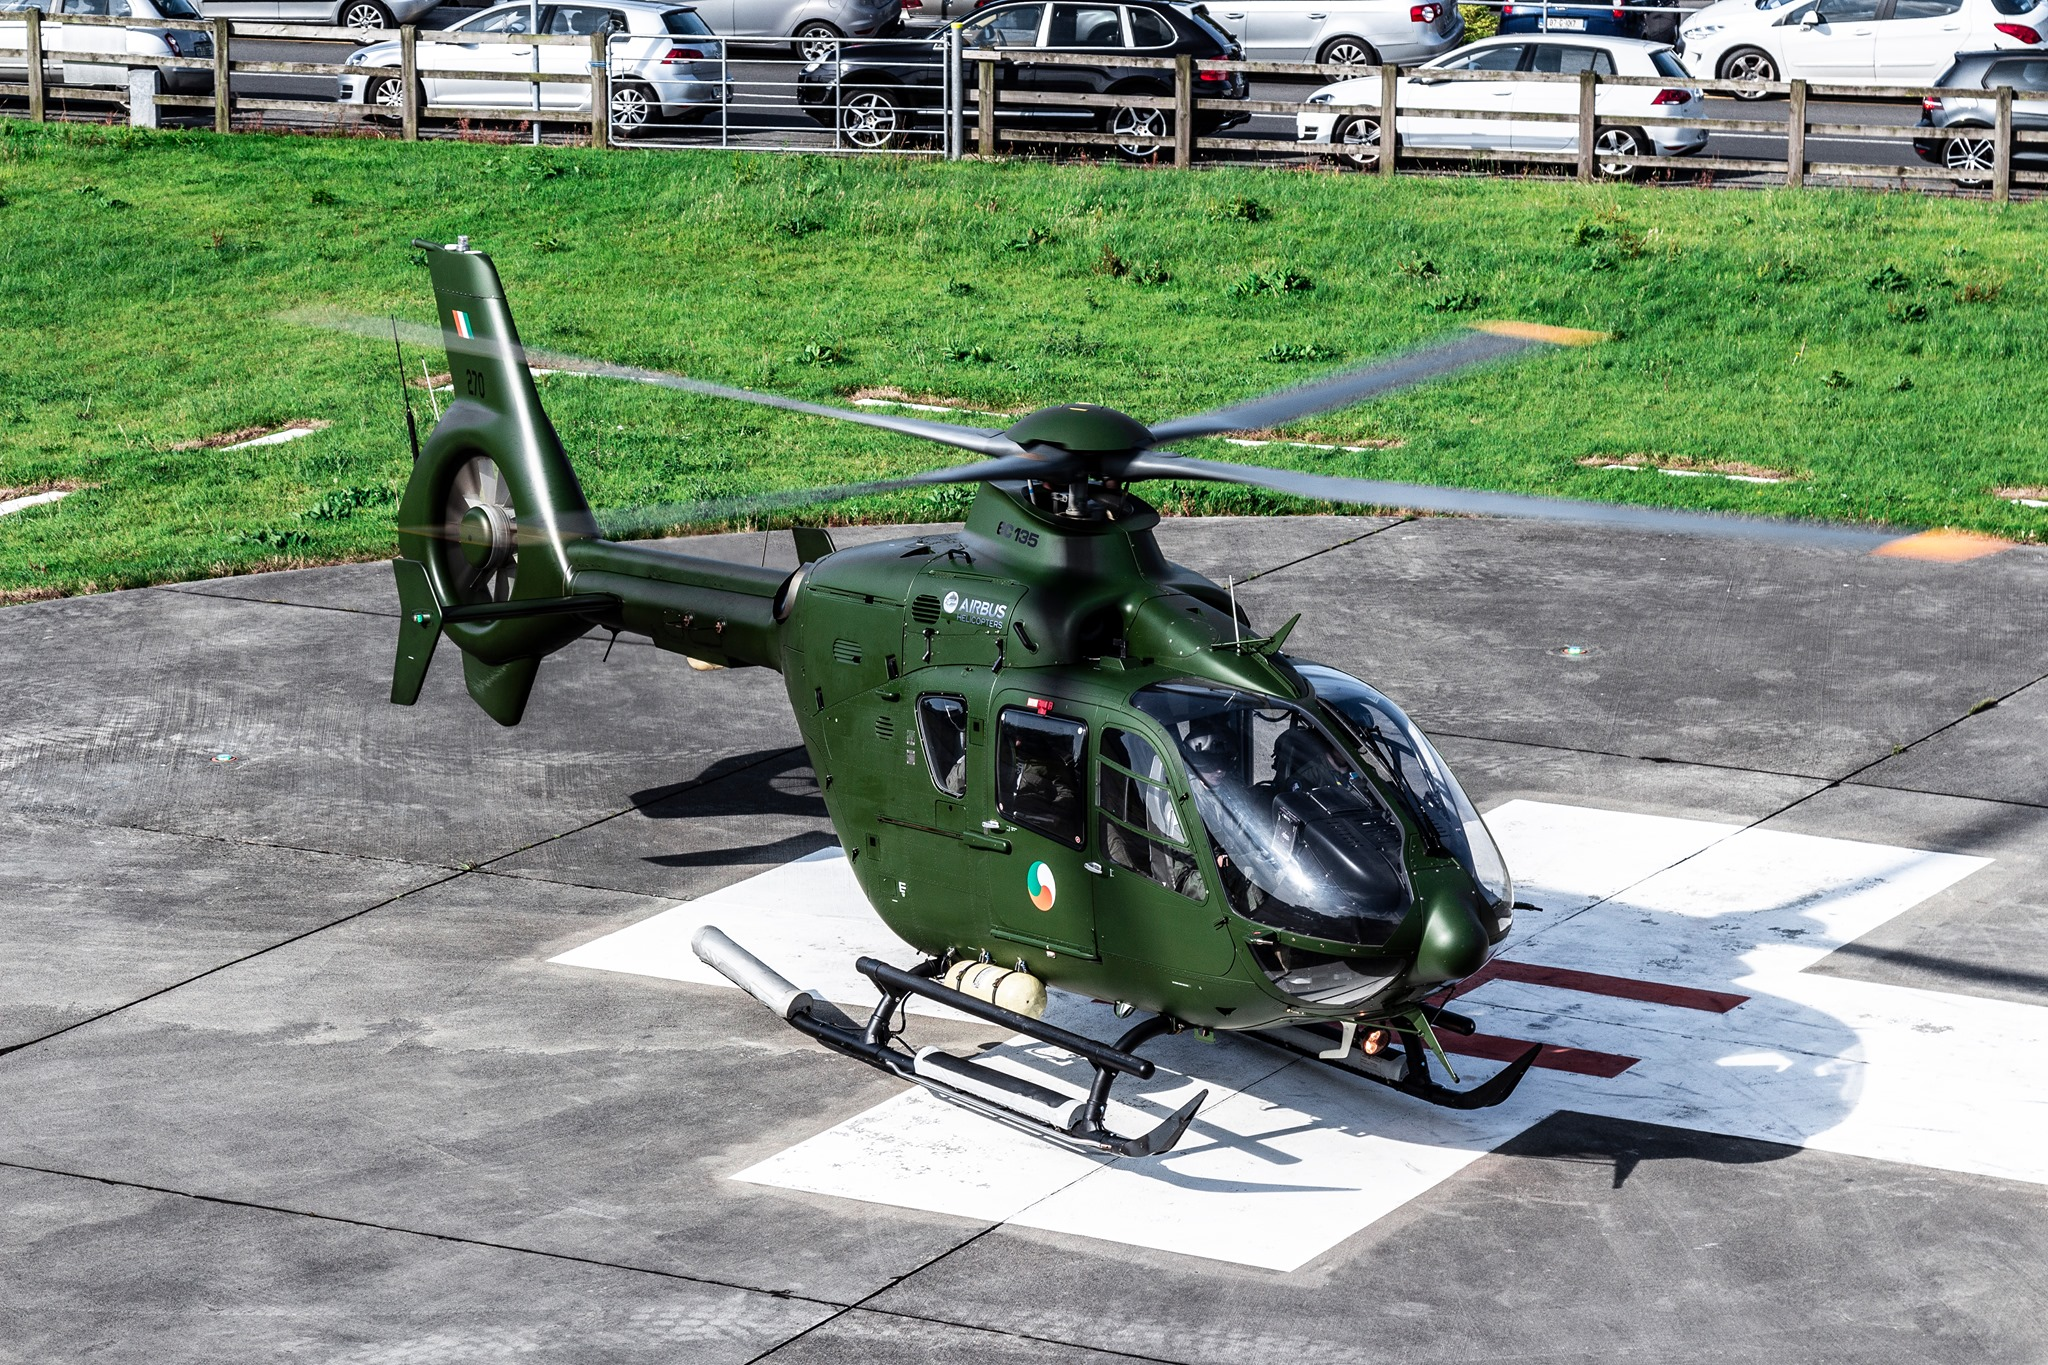 An Irish Air Corps Airbus EC135 at University Hospital Galway. Photo submitted by David McGrath